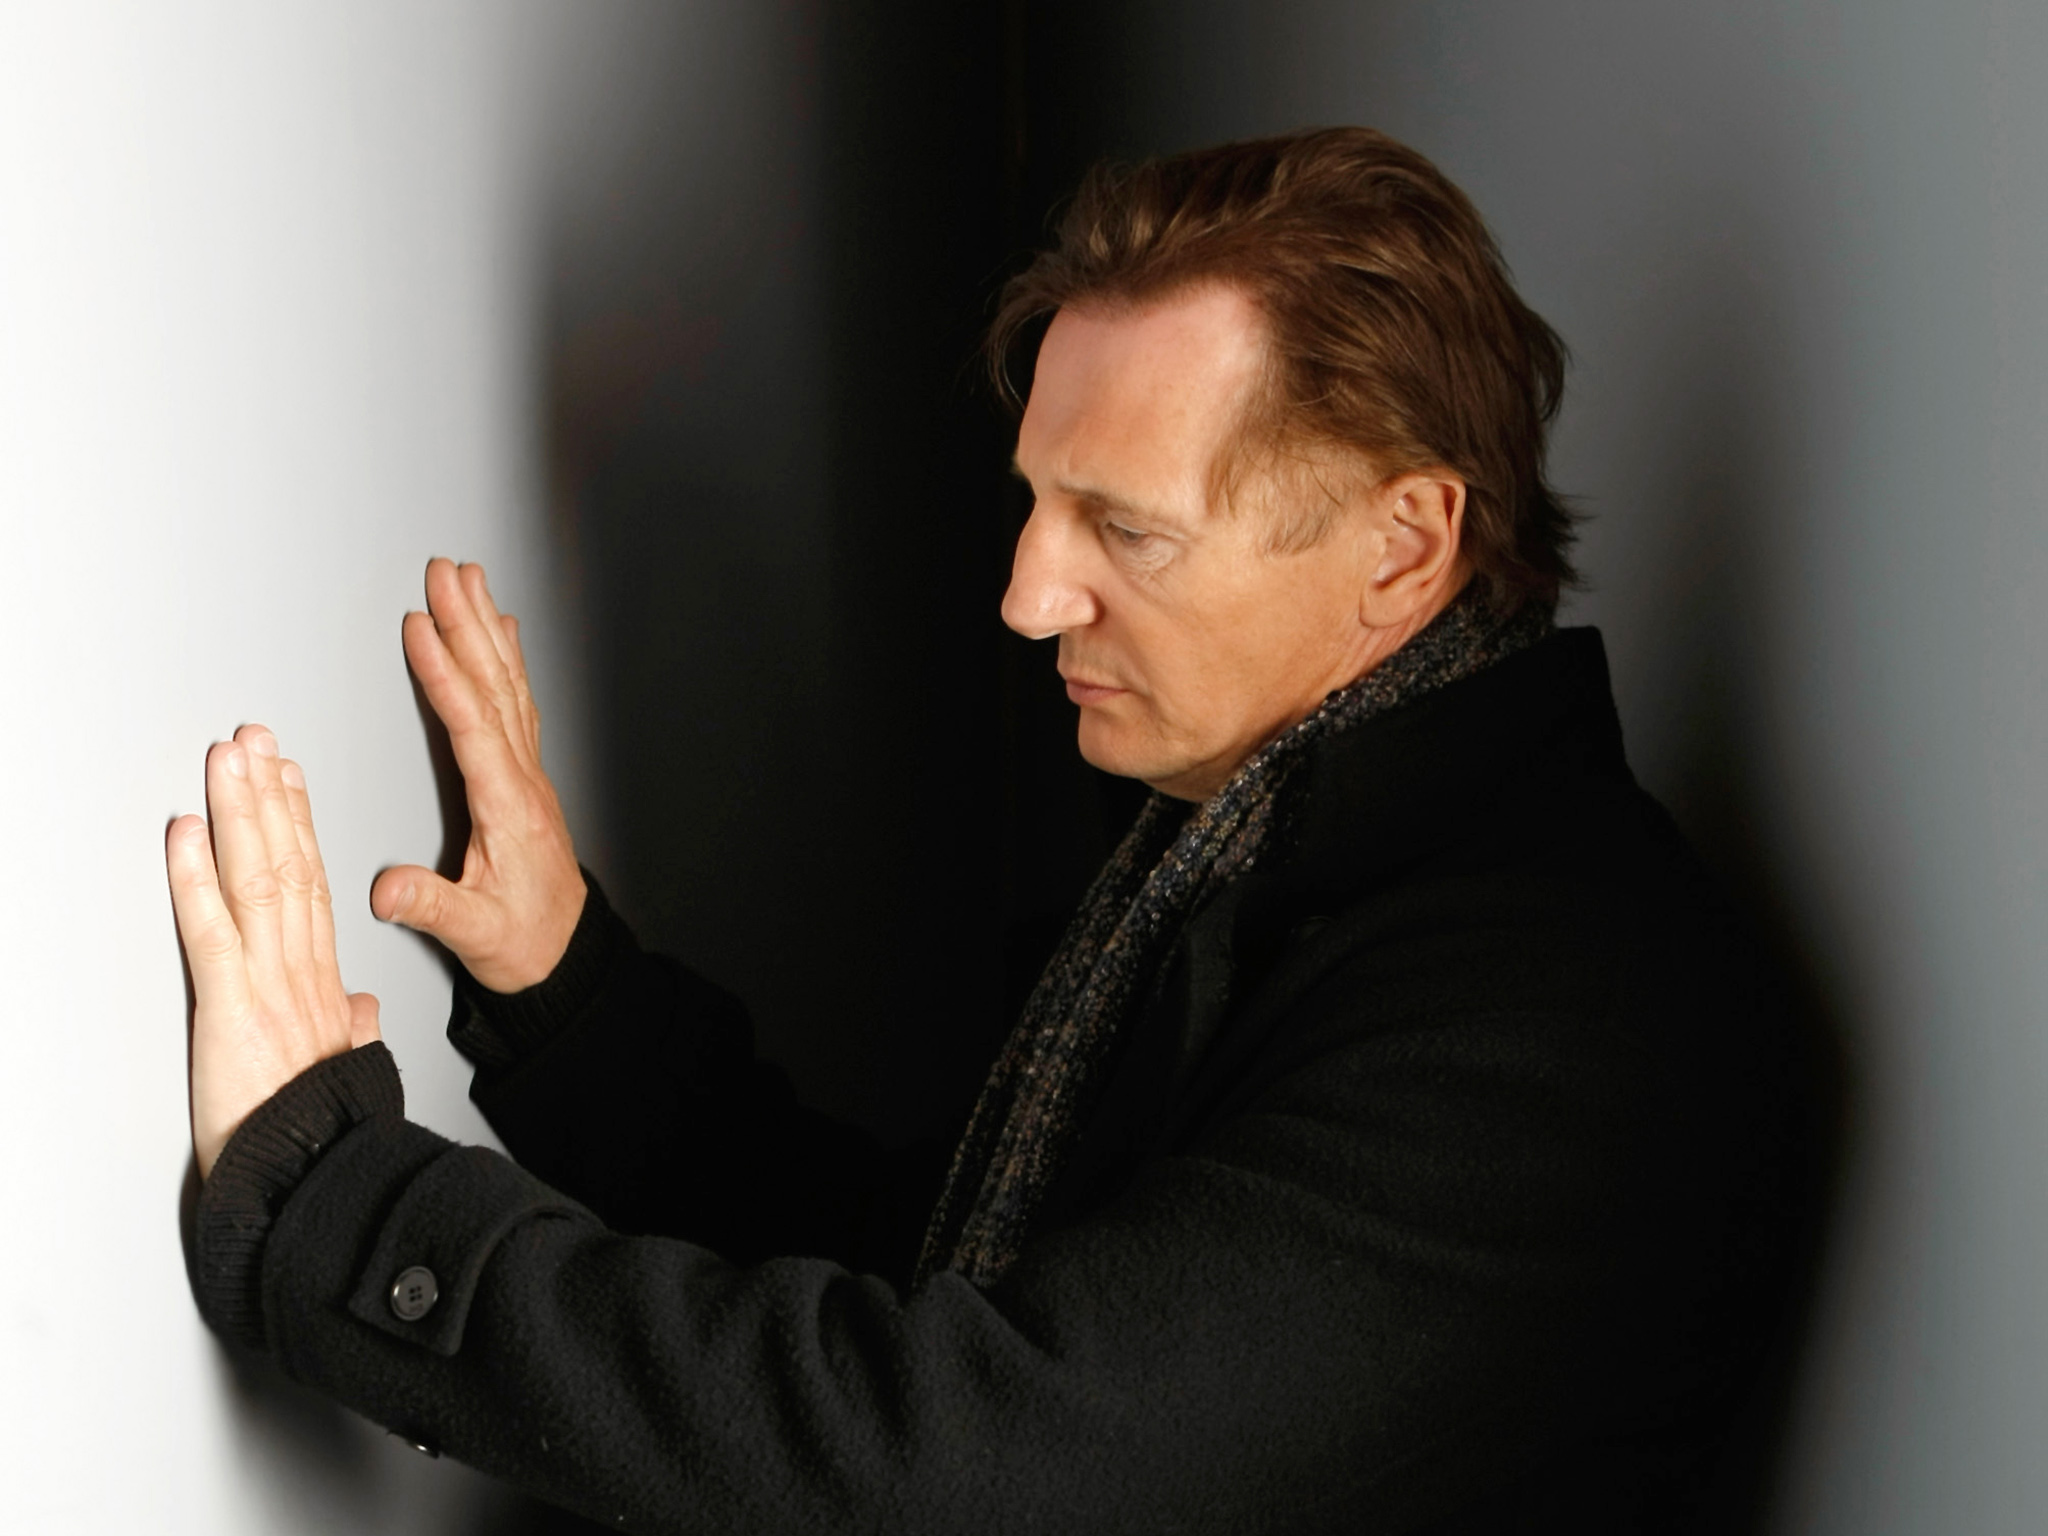 Liam Neeson interview: Hard man actor on Bono, Ralph Fiennes and his fear of guns - Features - Films - The Independent